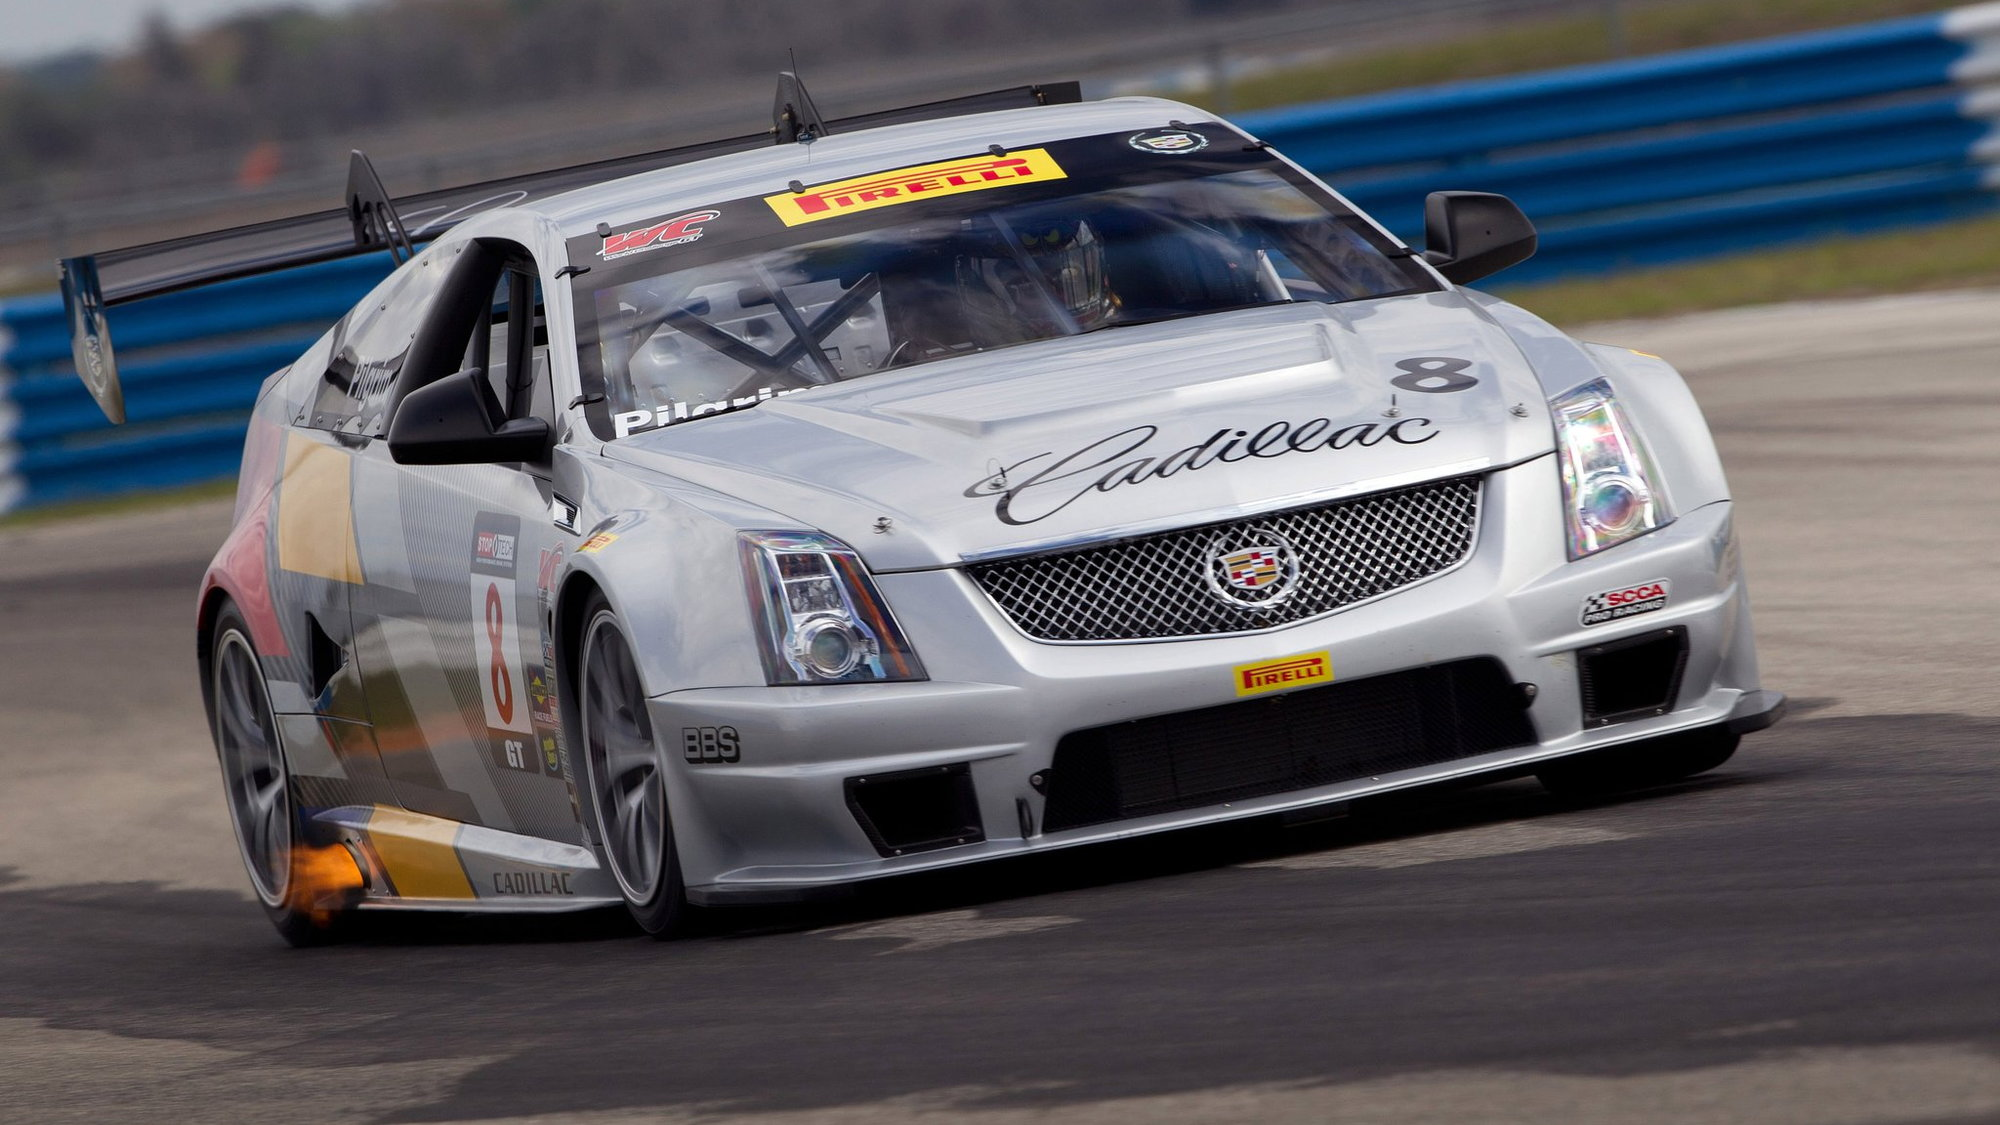 Cadillac CTS-V Coupe race car testing at Sebring